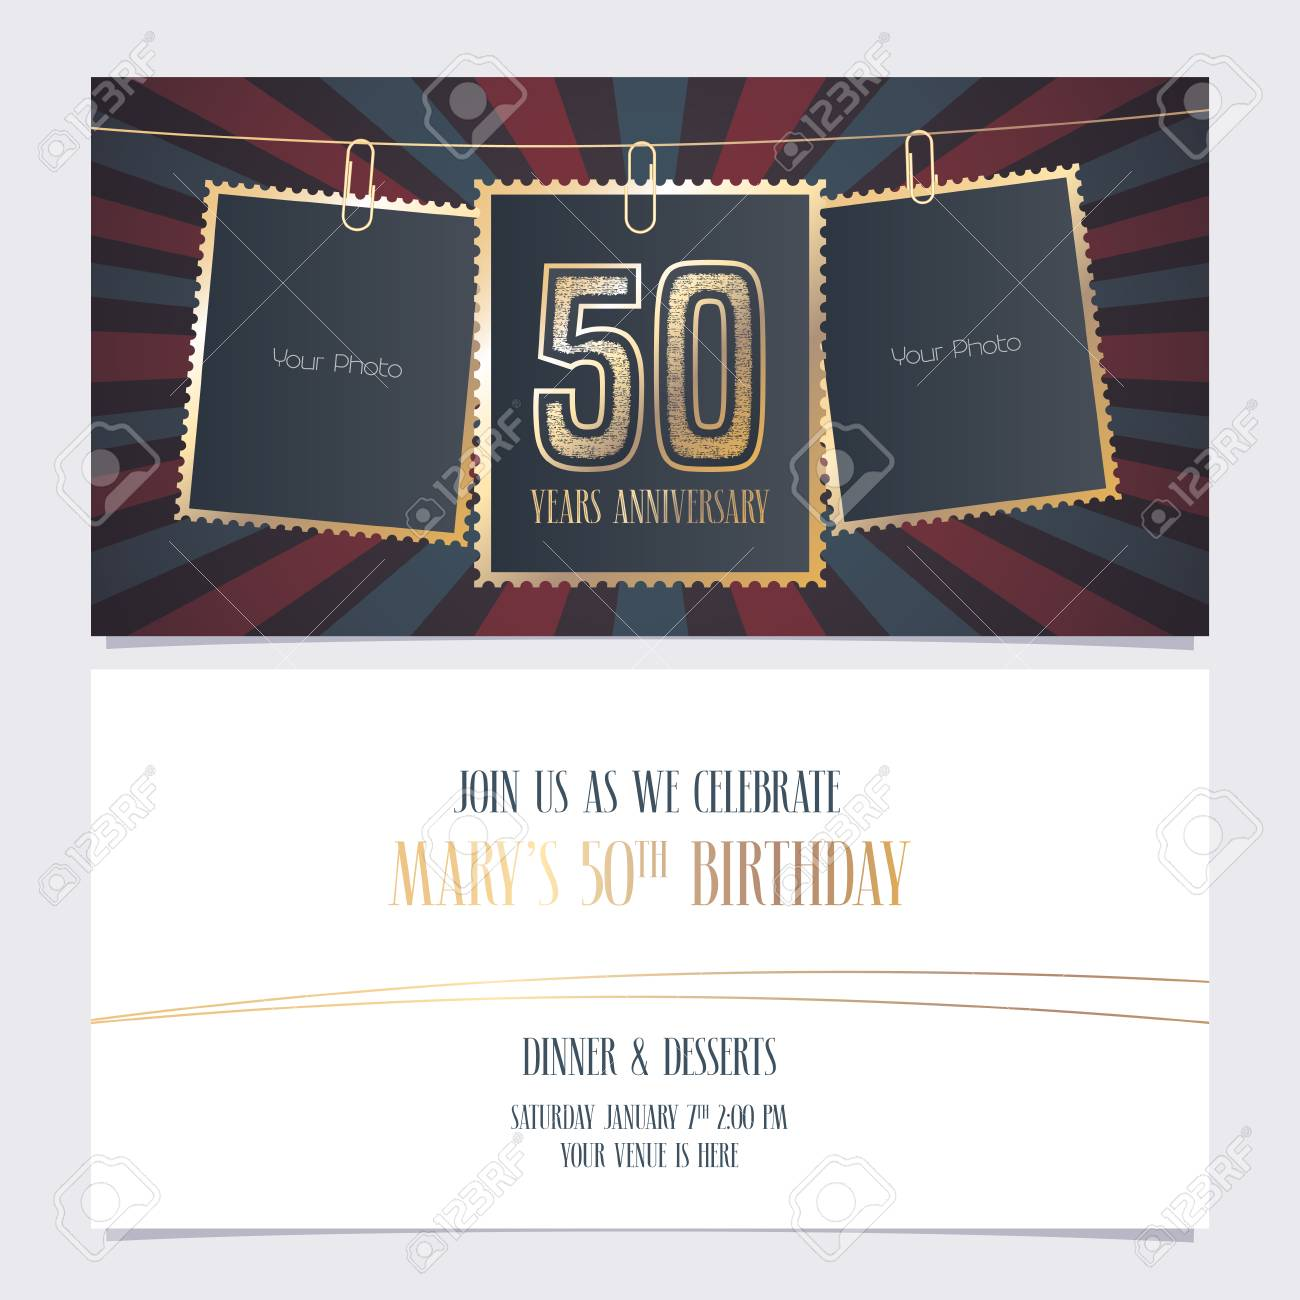 50 Years Anniversary Party Invitation Vector Template Illustration